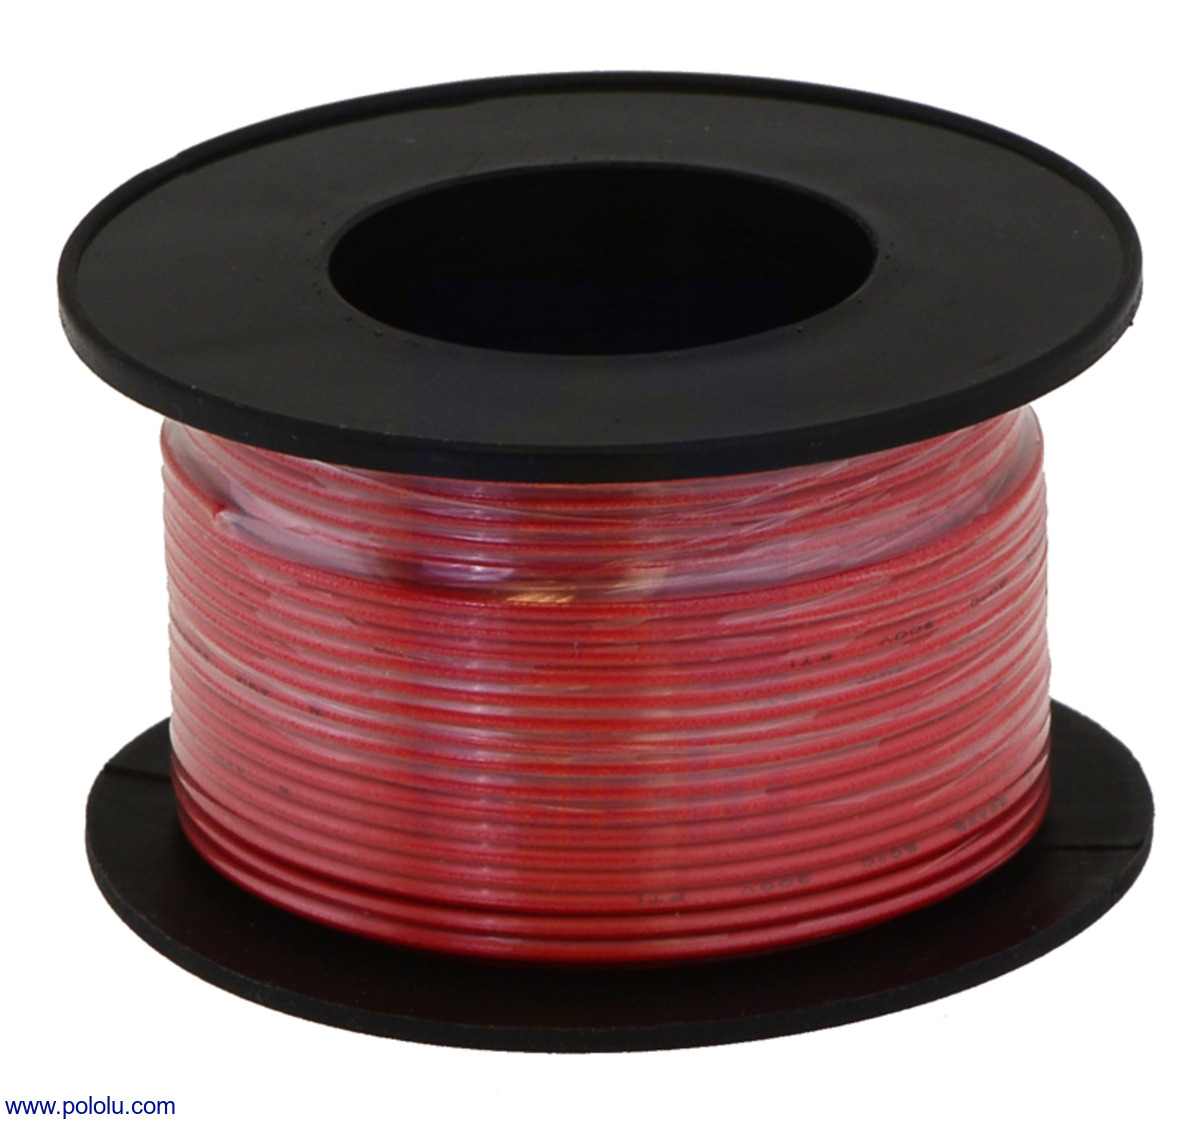 Pololu stranded wire red 28 awg 90 feet stranded wire red 28 awg 90 feet greentooth Choice Image